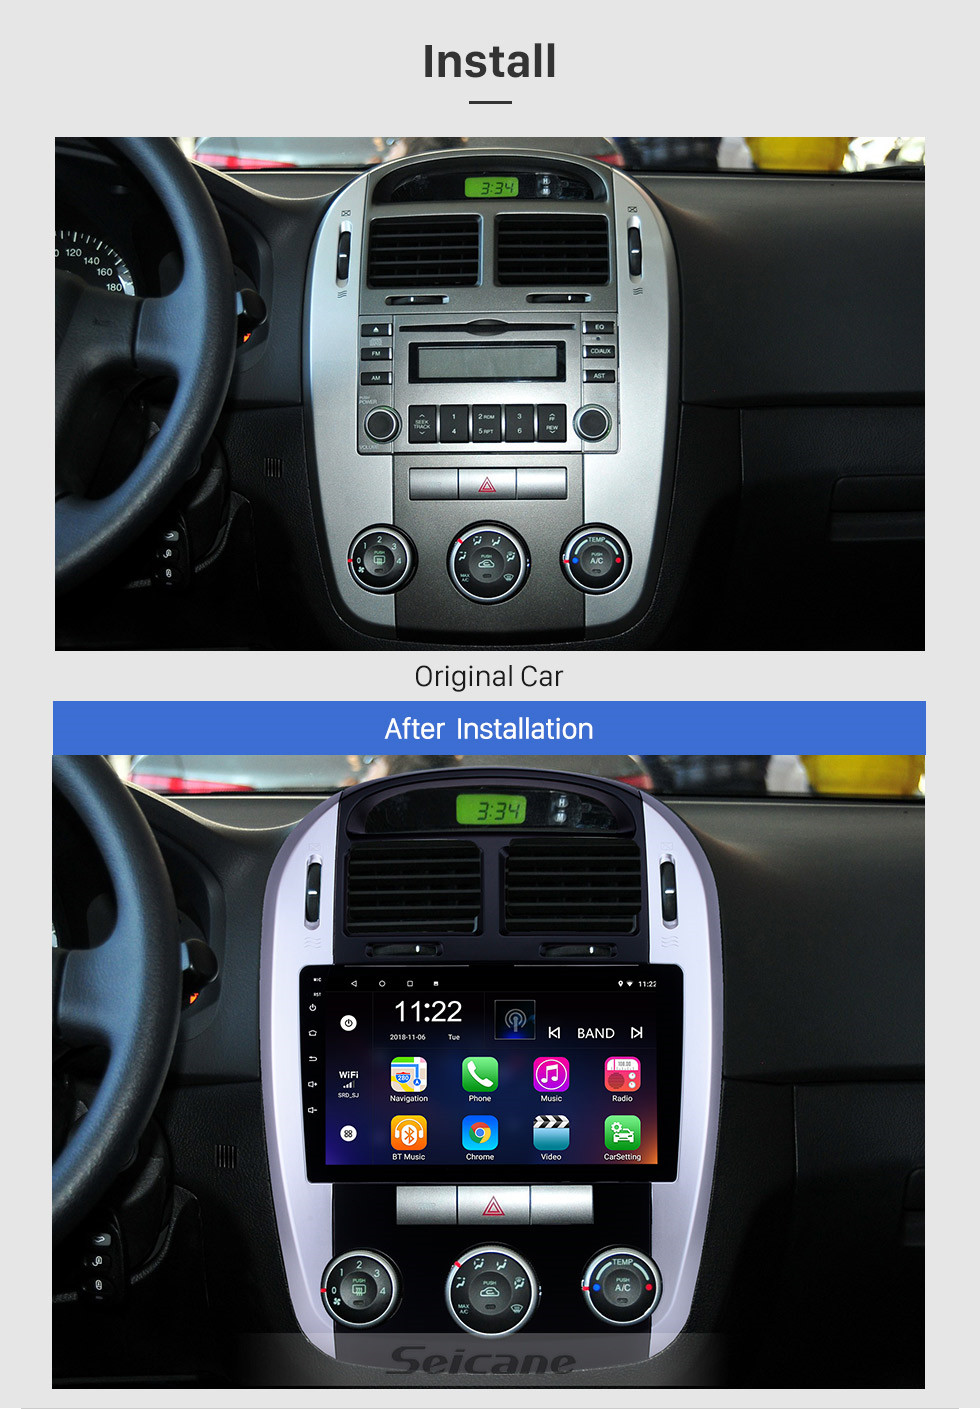 Seicane HD Touchscreen 9 inch Android 10.0 GPS Navigation Radio for 2012-2016 Kia Cerato with Bluetooth AUX support DVR Carplay OBD Steering Wheel Control